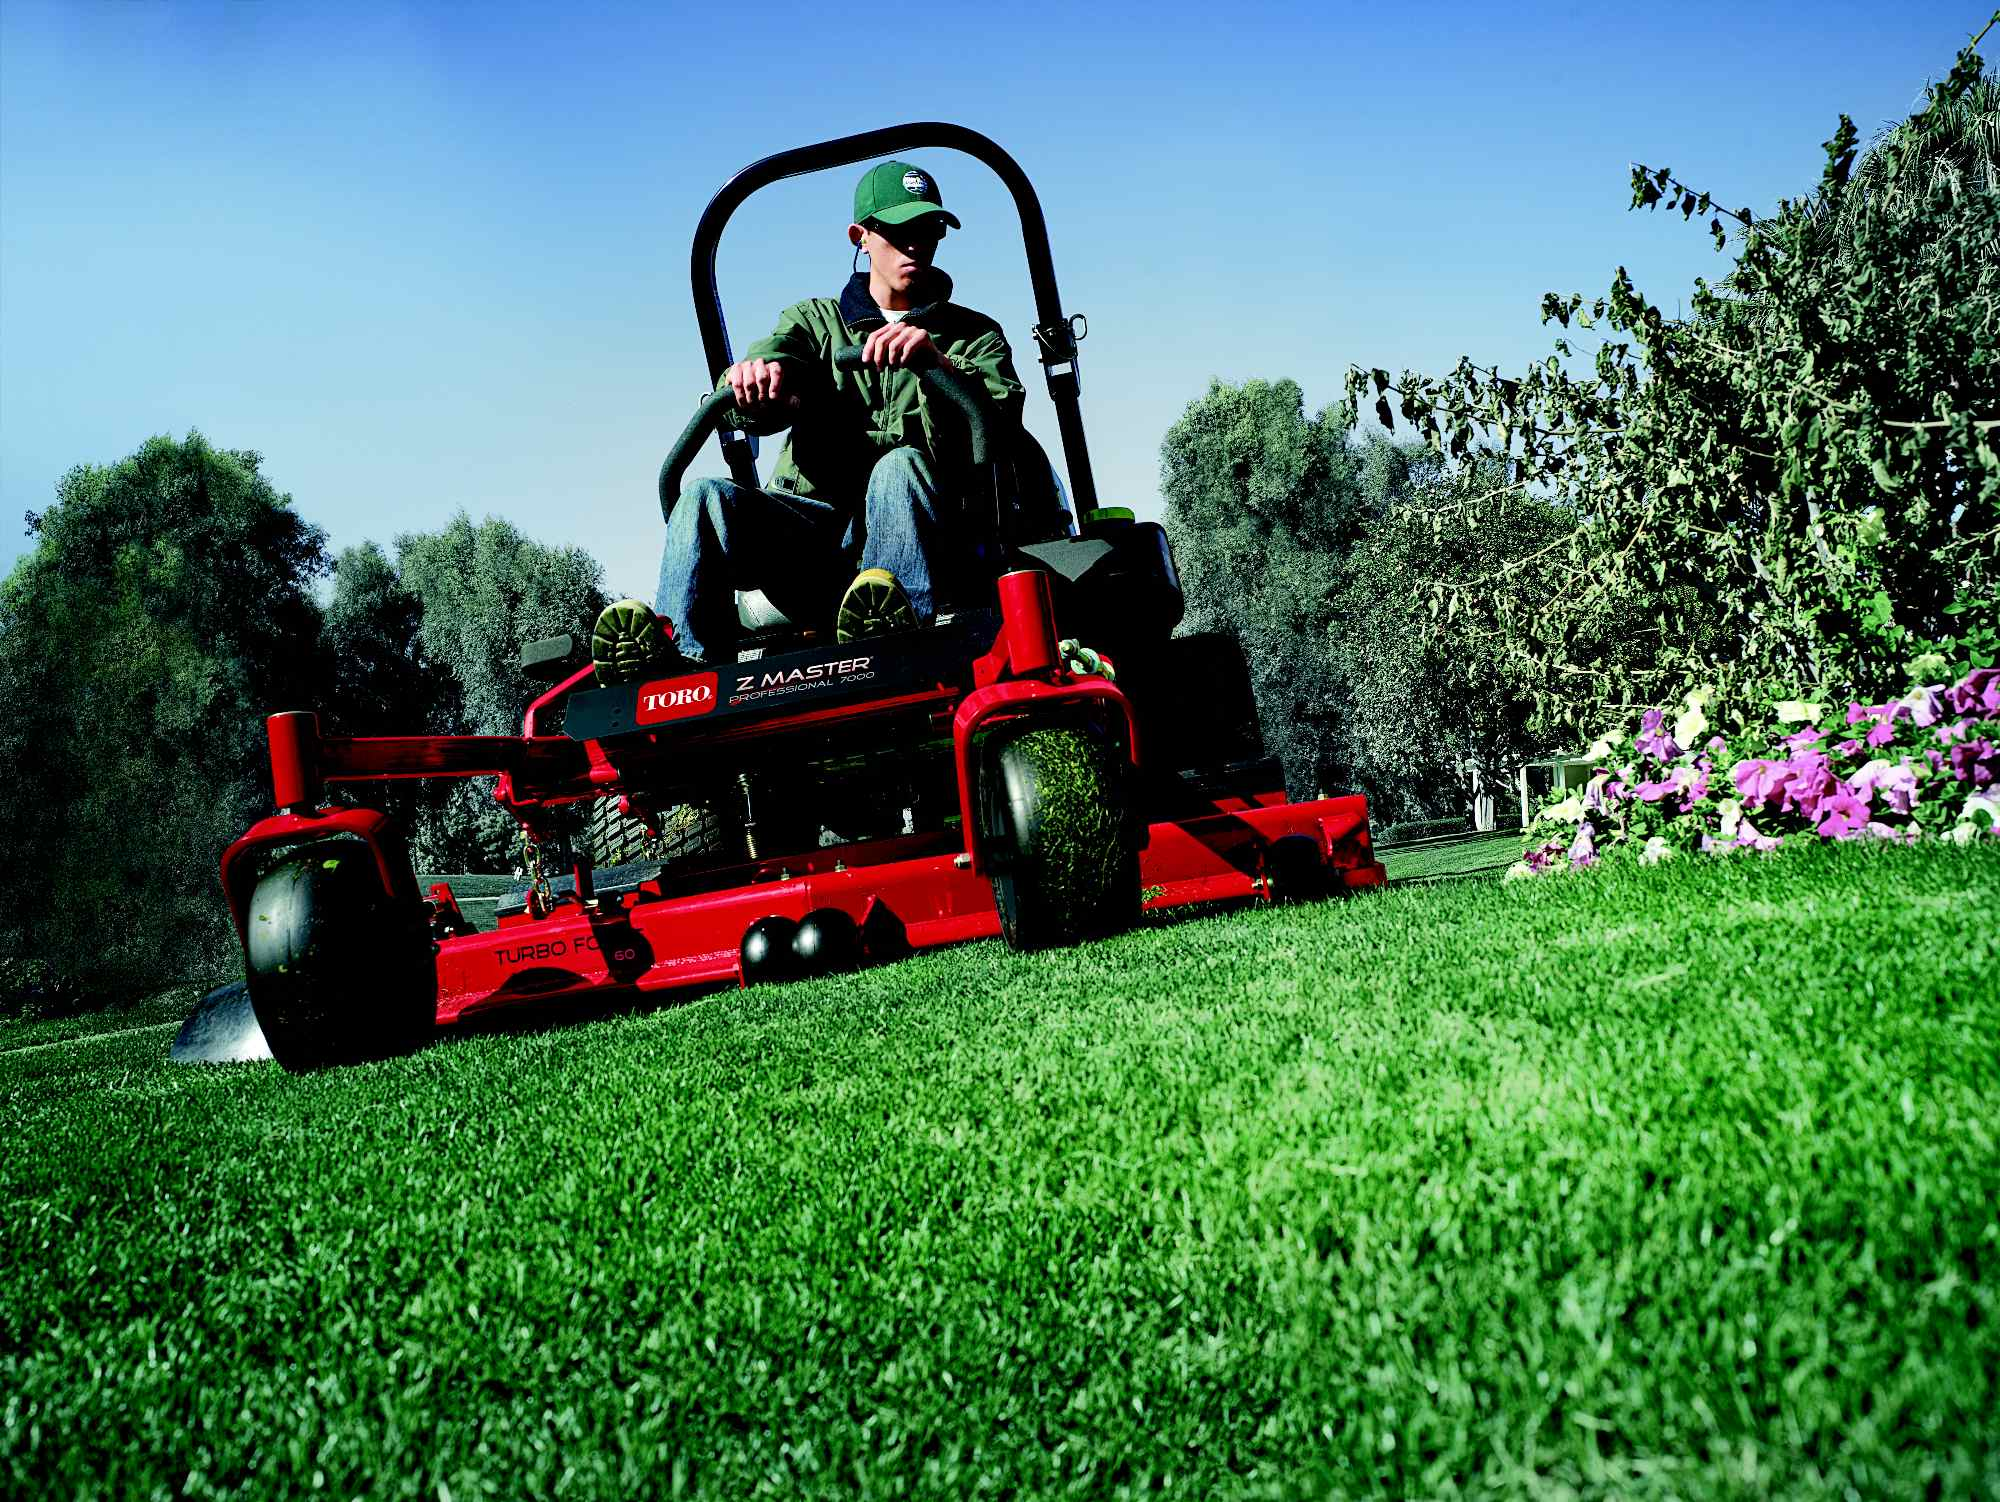 Commercial Lawn Mowers and Residential Lawn Mowers from Toro